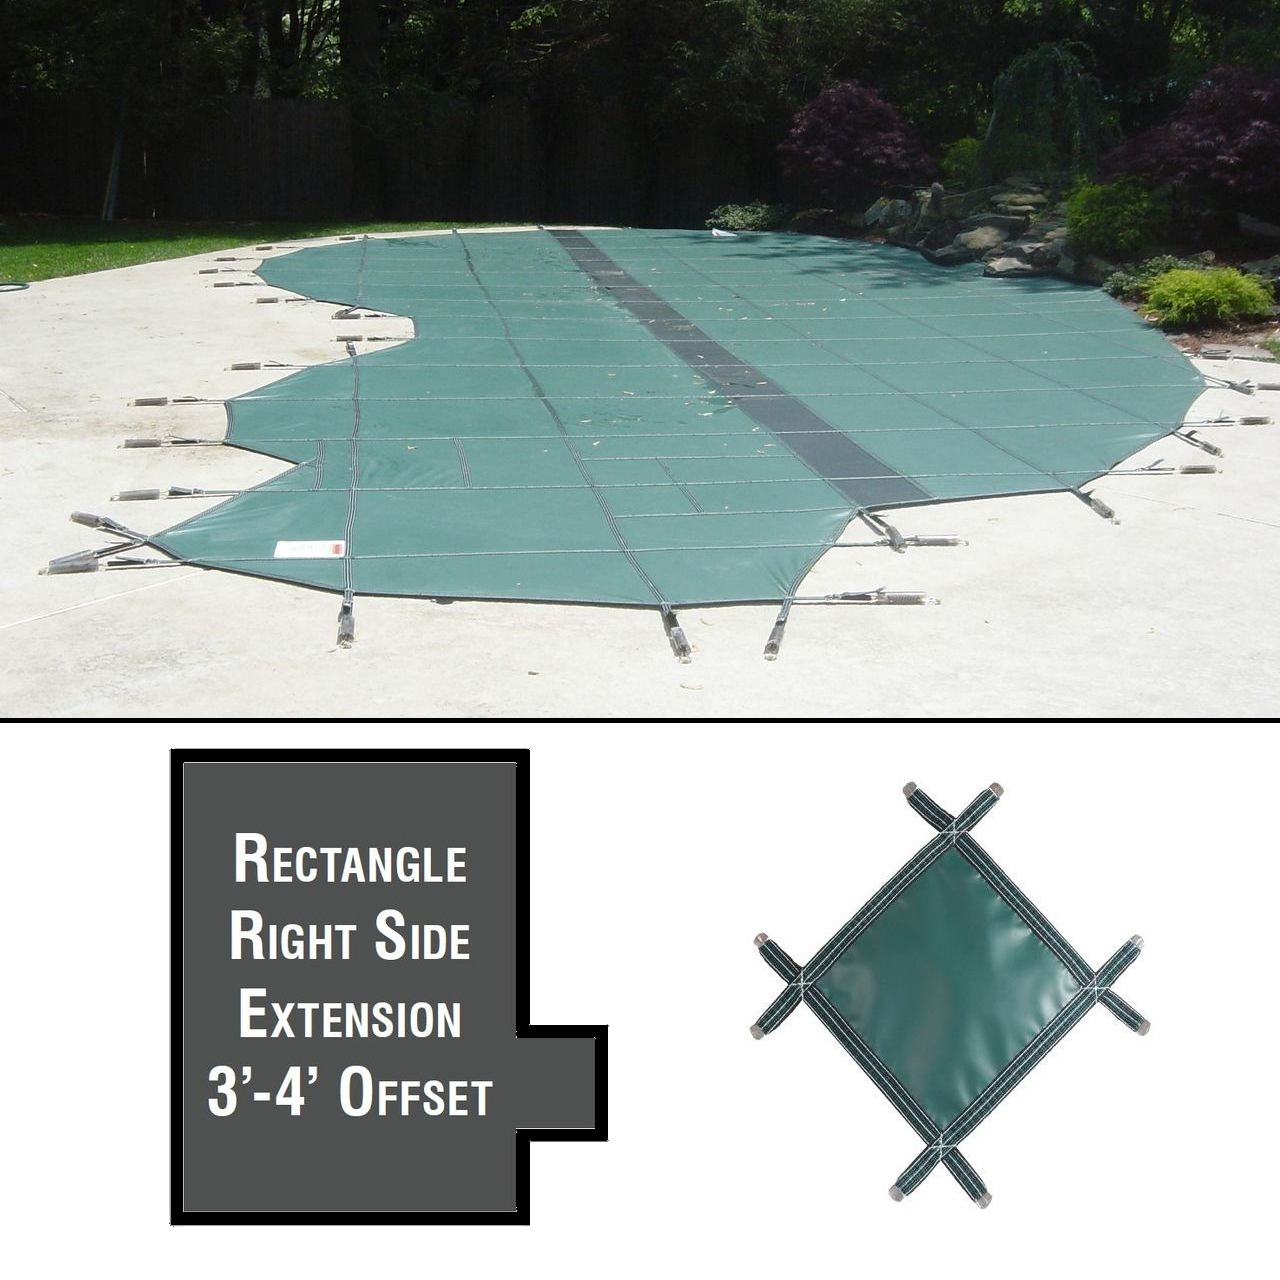 PermaGuard 22'x42' Rectangular Pool Cover Plus Right Ext 3' Offset